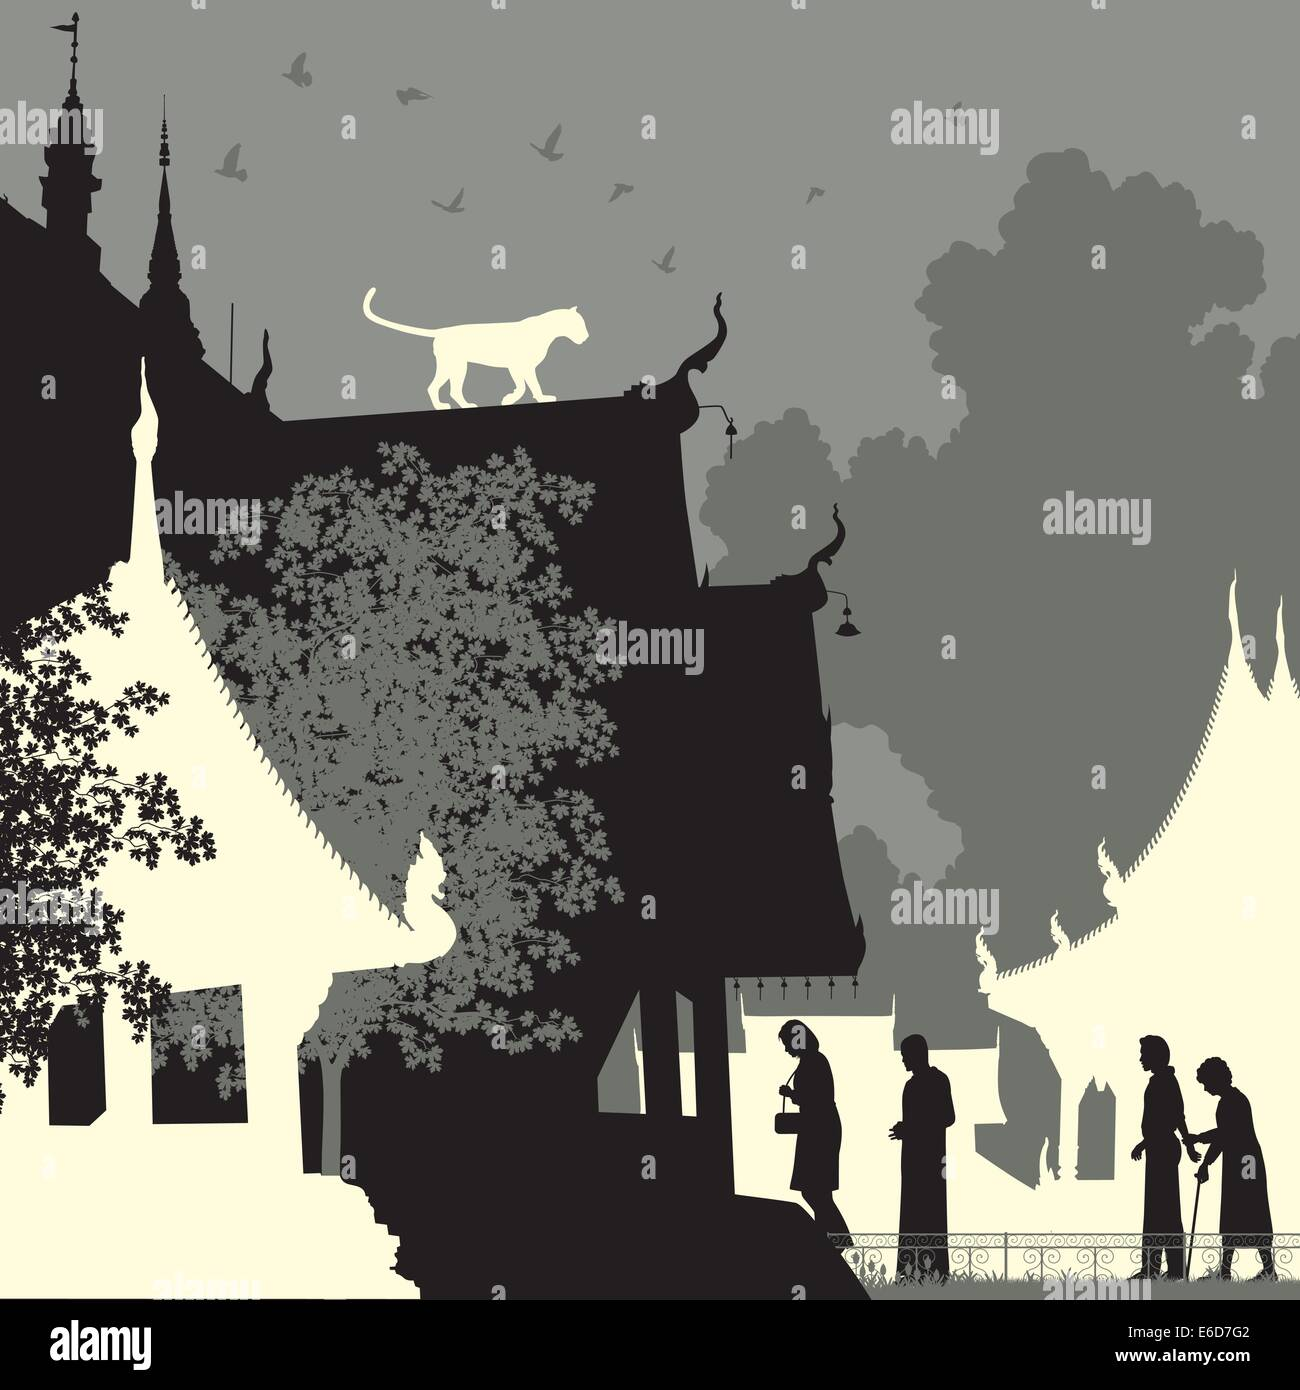 Editable vector silhouette of a leopard on a Buddhist temple roof with figures as separate objects - Stock Image